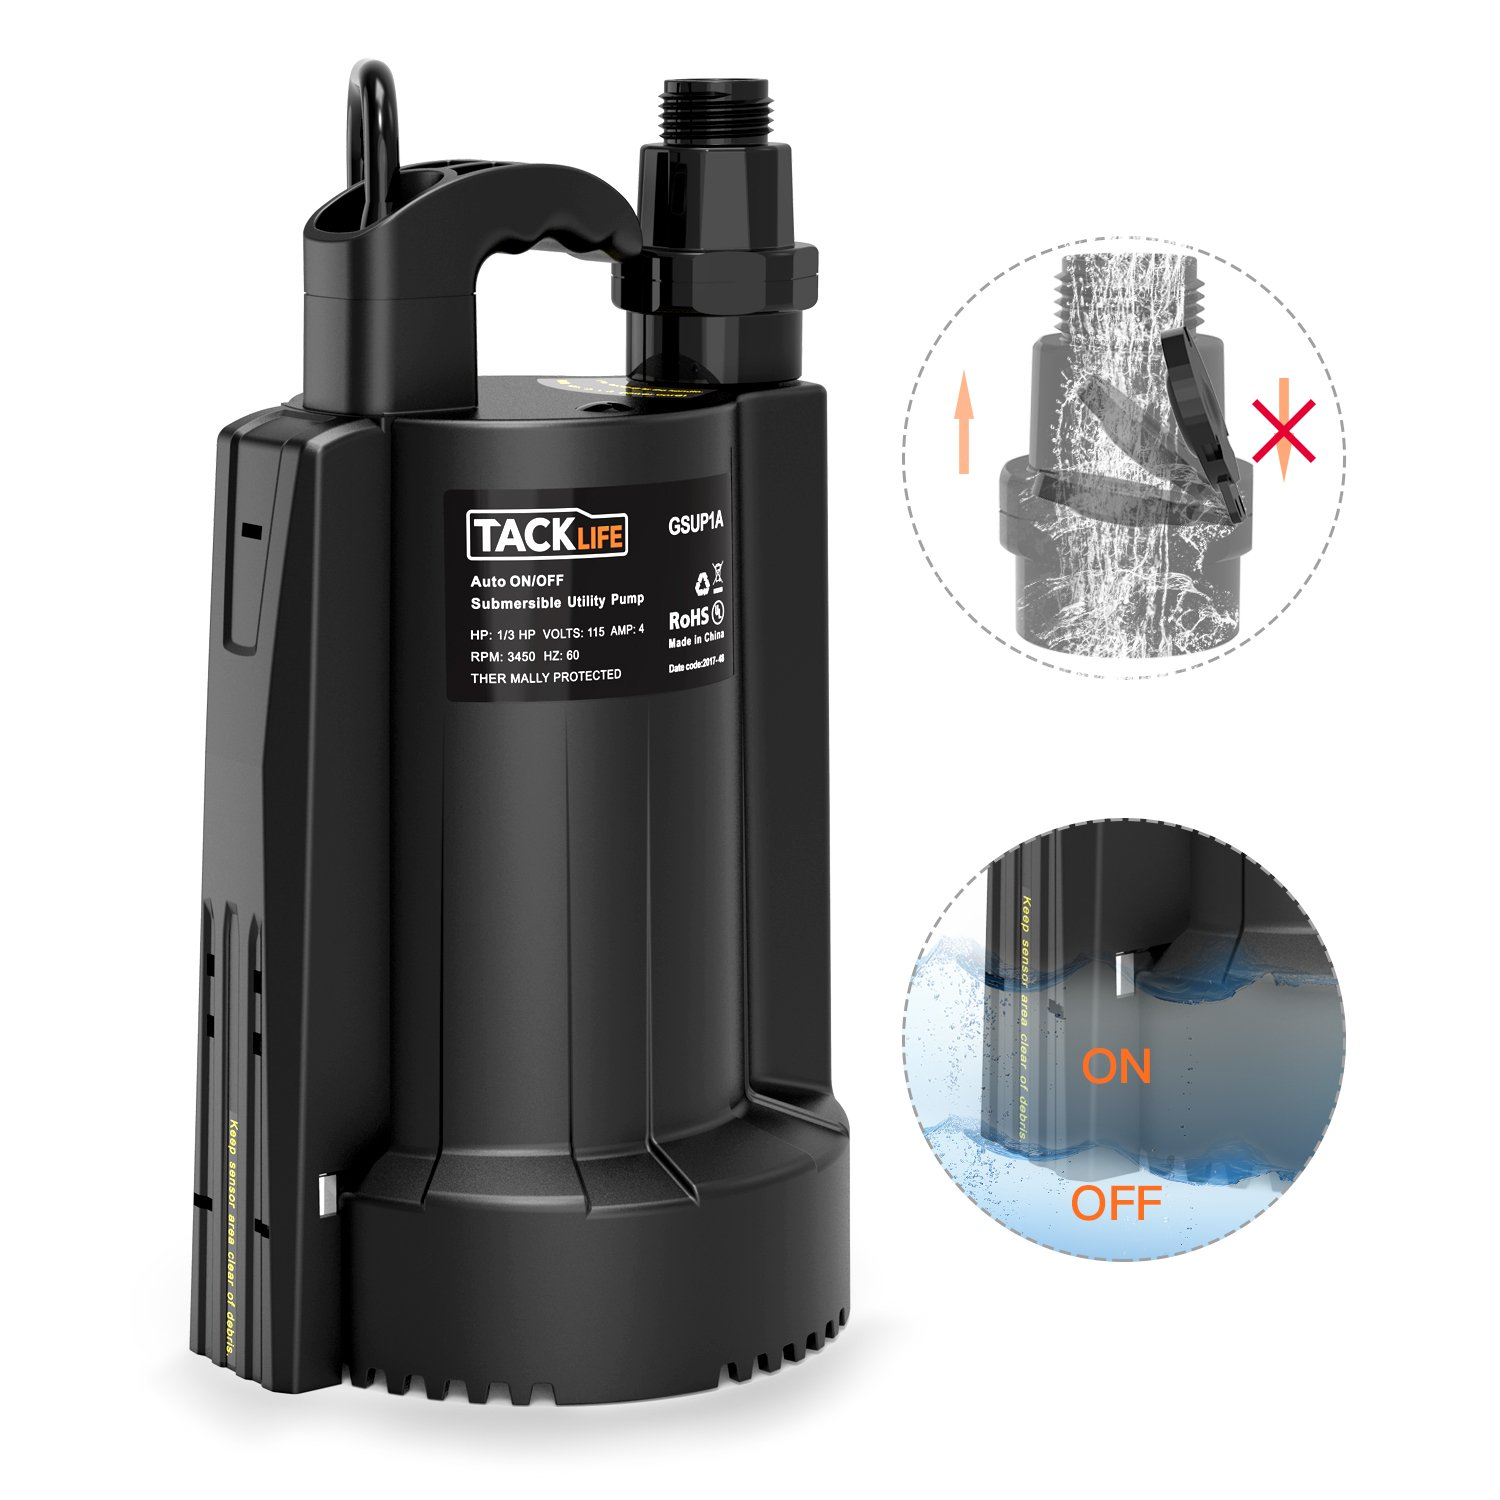 Submersible Water Pump, TACKLIFE 1/3 HP Automatic Switch Electric Water Pump with Low Noise and Check Valve, High-efficiency Pure Copper Motor, 2550 GPH Max Flow Swimming Pool Garden Pond Flood Drain